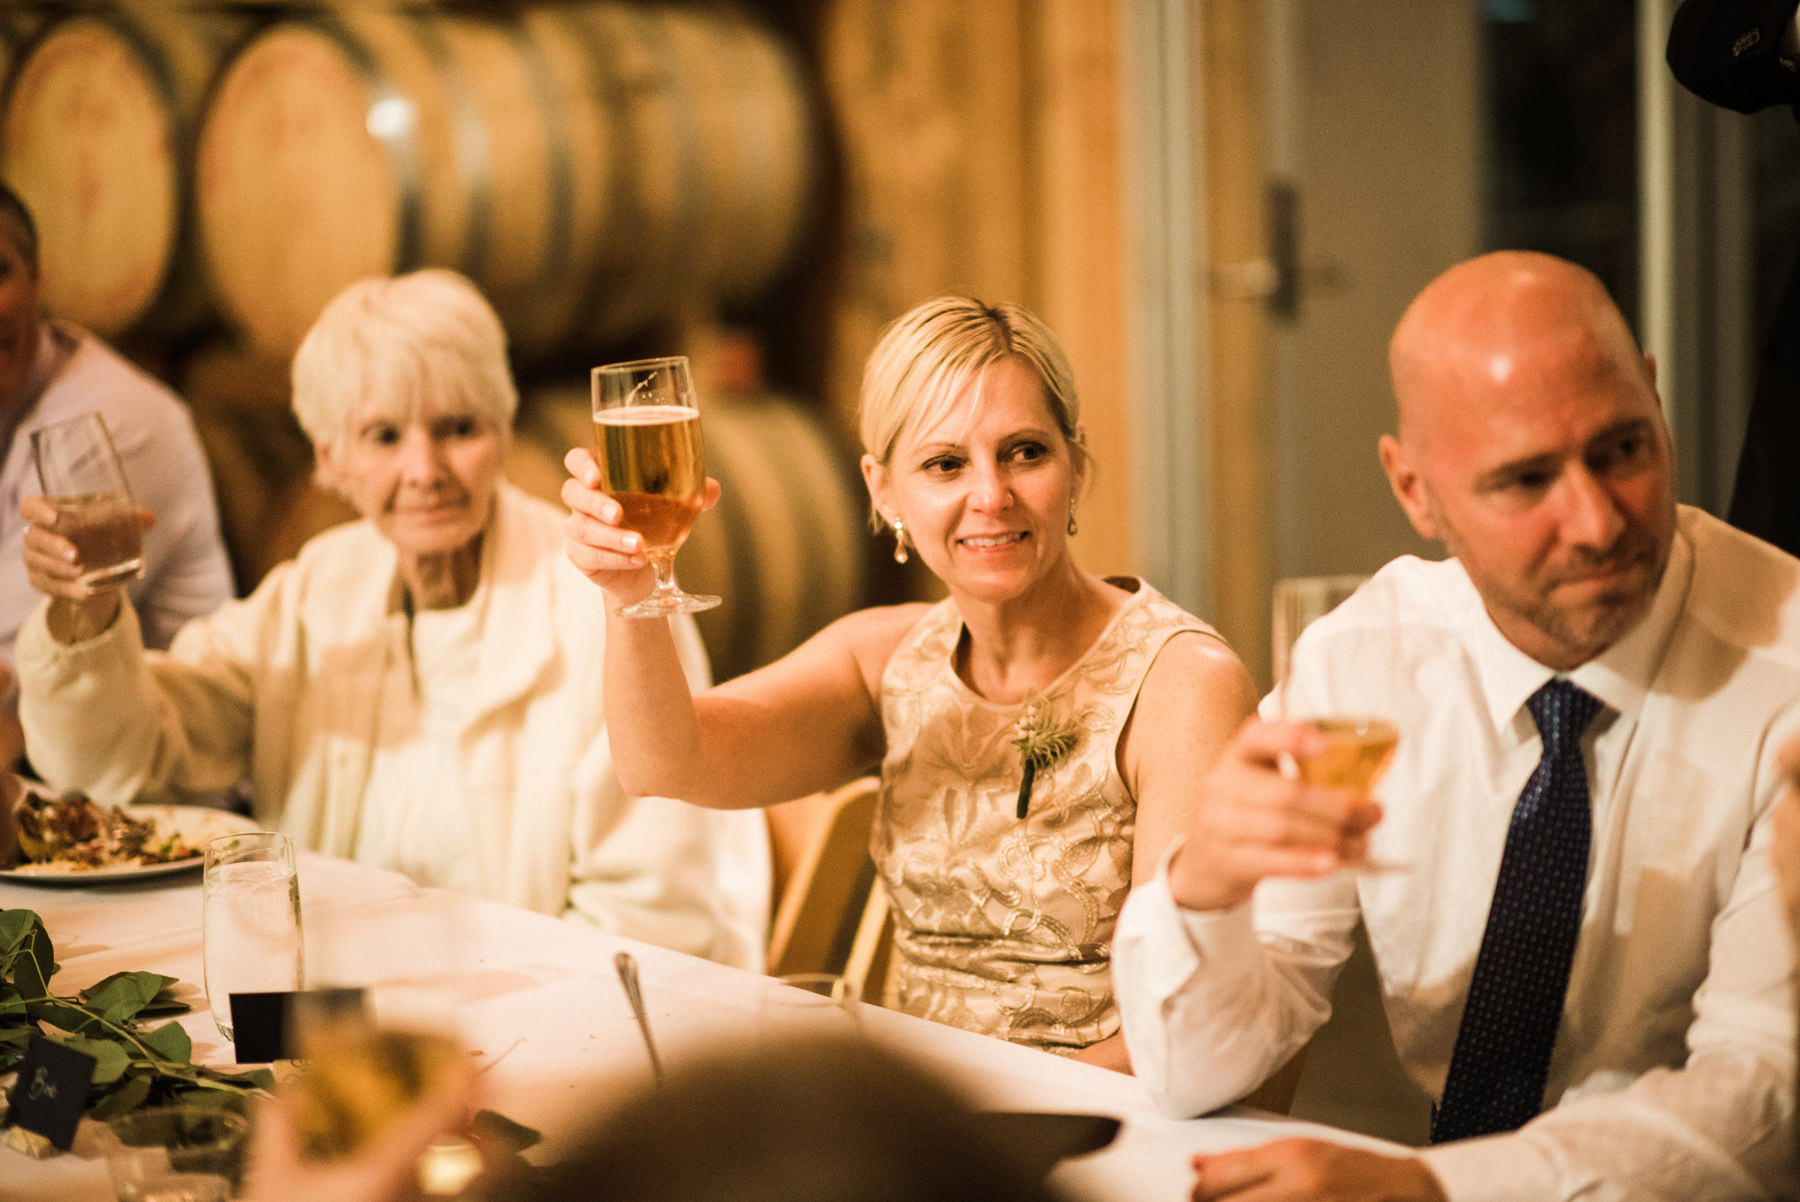 070-emotional-wedding-toasts-by-documentary-photographer-ryan-flynn.jpg